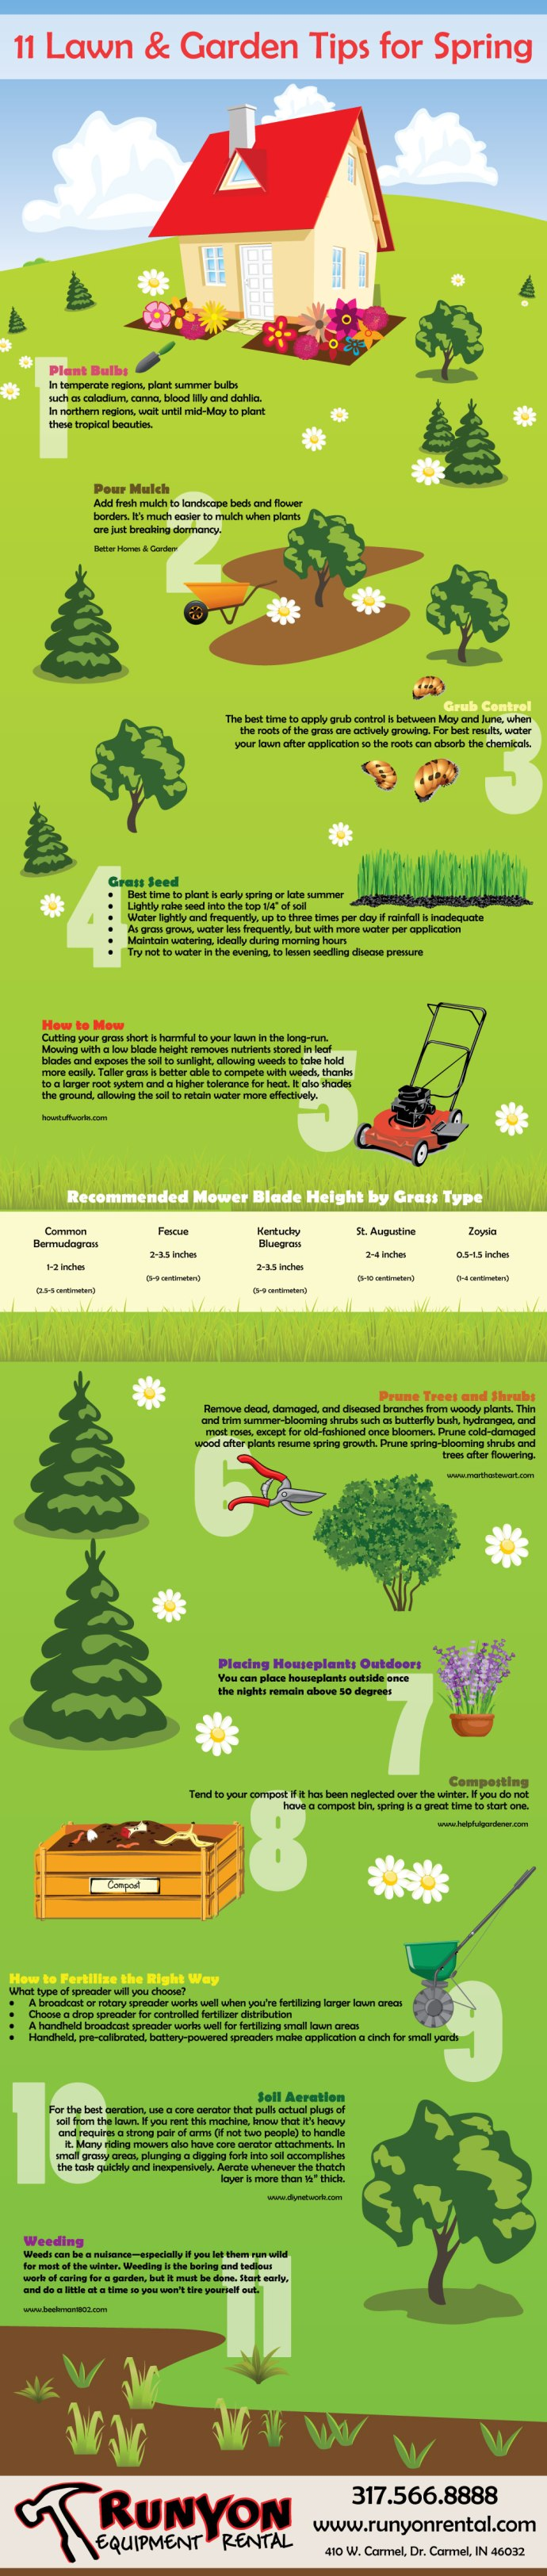 11 Lawn and Garden Tips for Spring